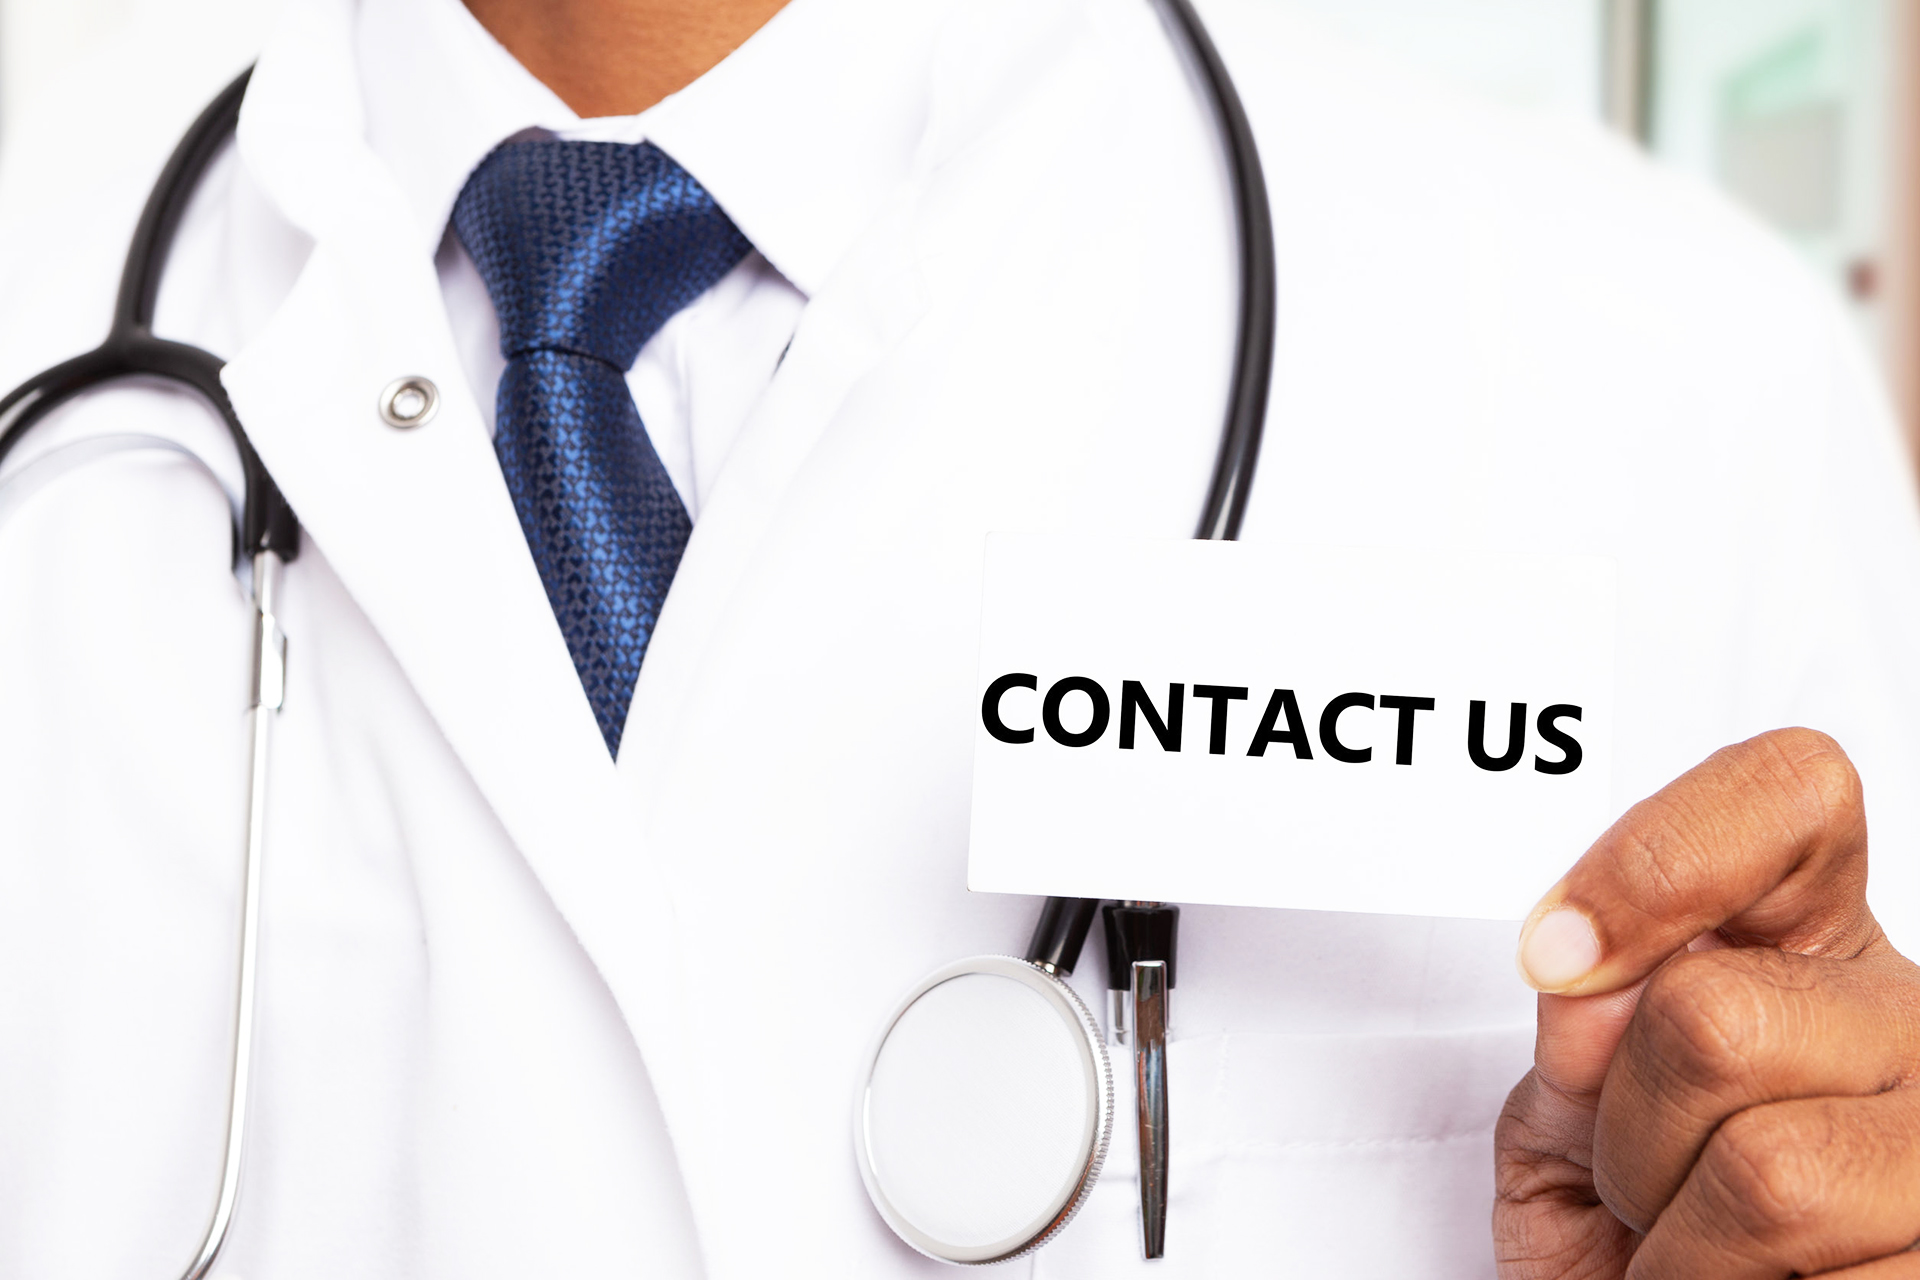 doctor presenting close-up of contact us text on white business card